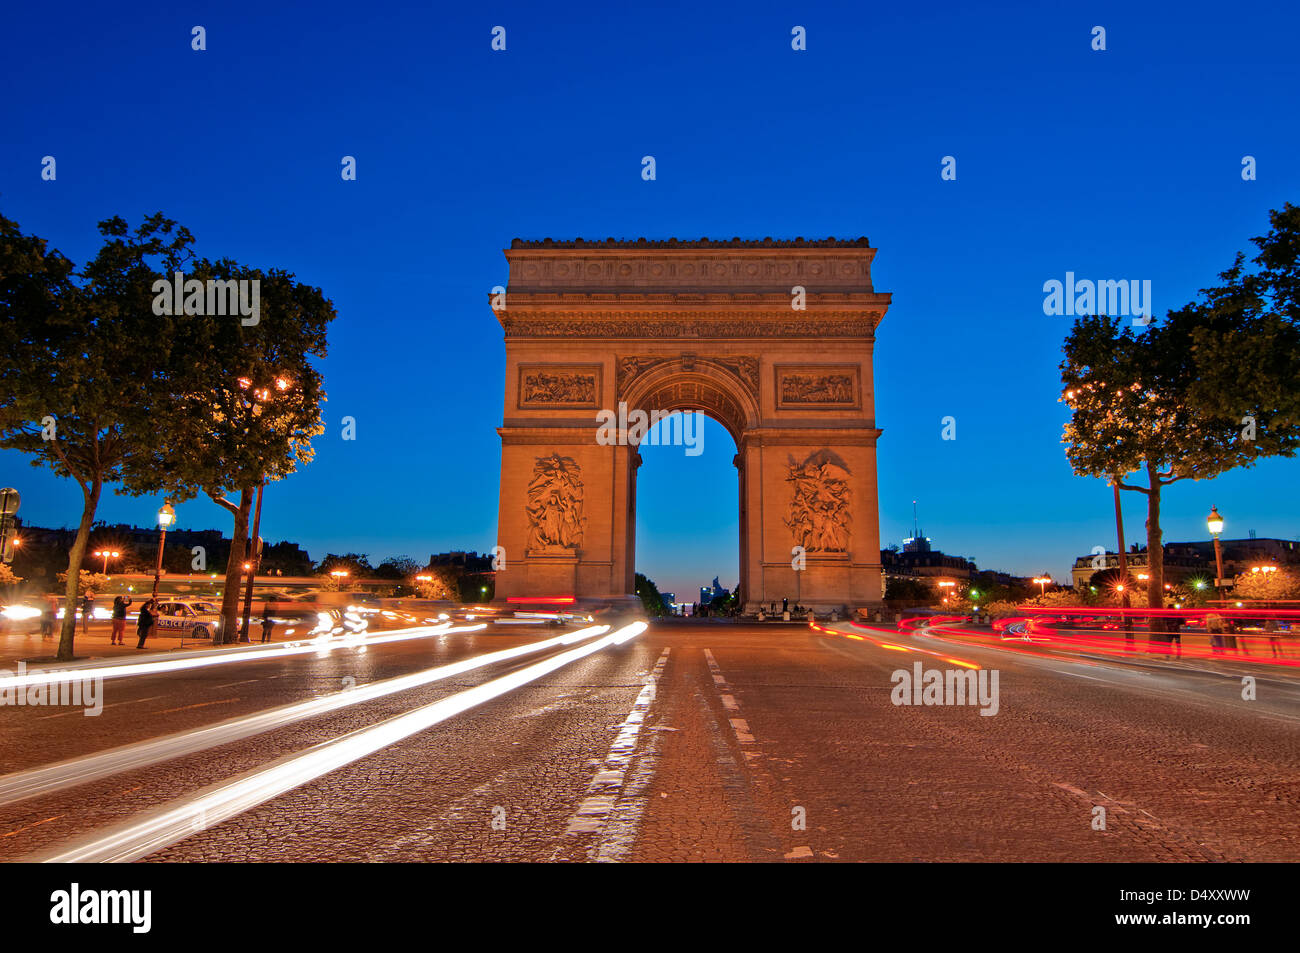 Light trail image in the front of the landmark Arc de Triomphe at night time in Paris, France. - Stock Image